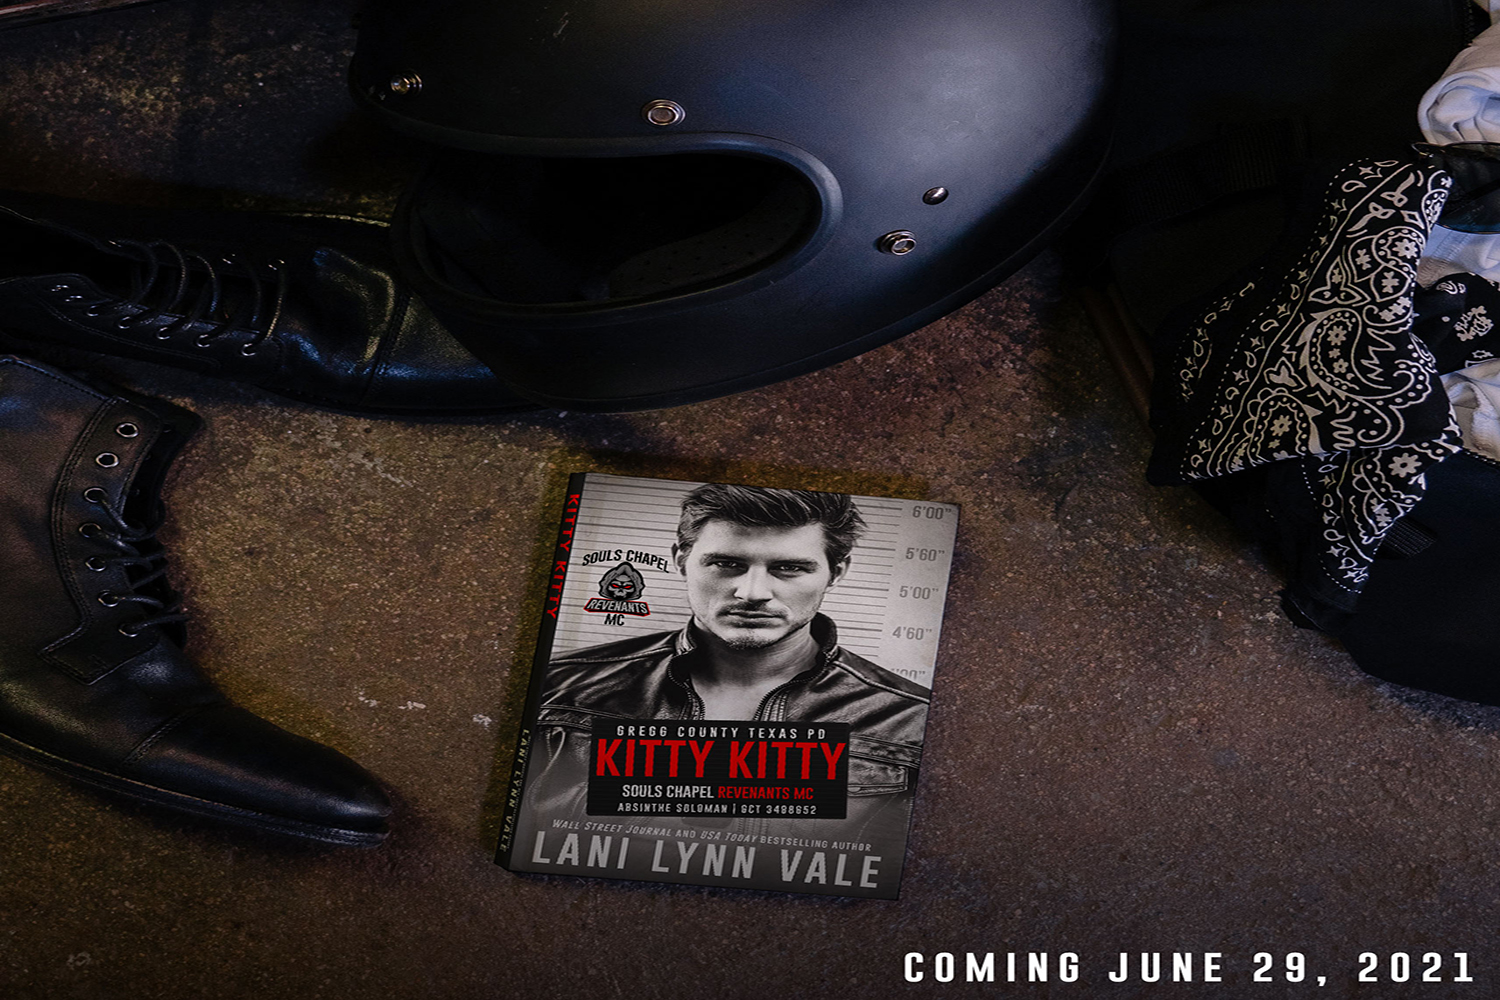 Kitty Kitty by Lani Lynn Vale | Cover Reveal